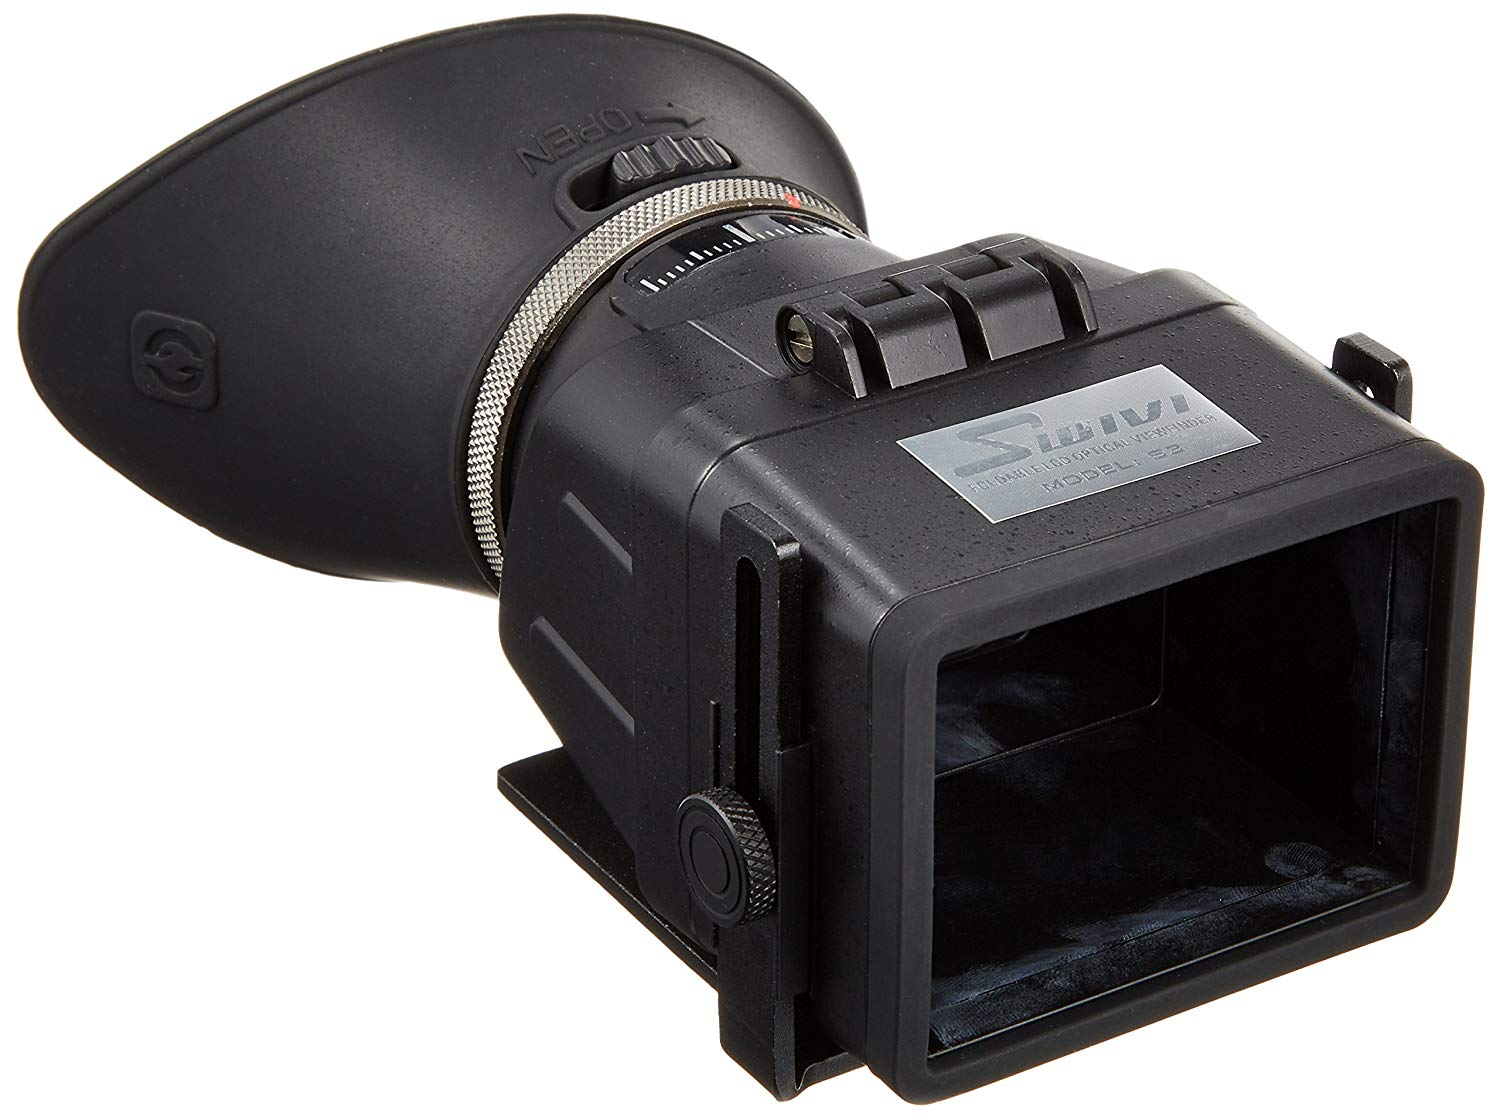 GGS Swivi Professional Viewfinder Loupe S3 for Video on DSLR Camera [JU1202]